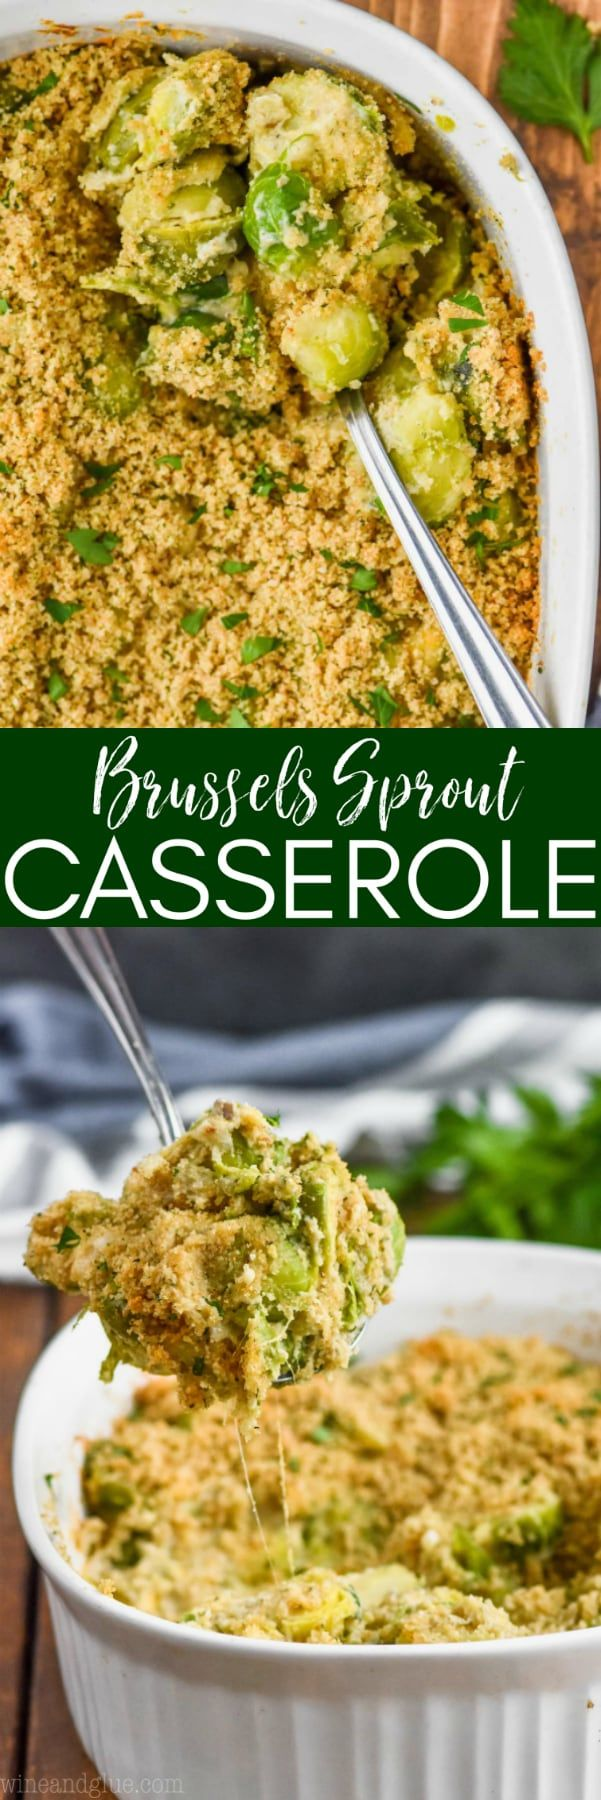 Baked Brussel Sprouts Casserole